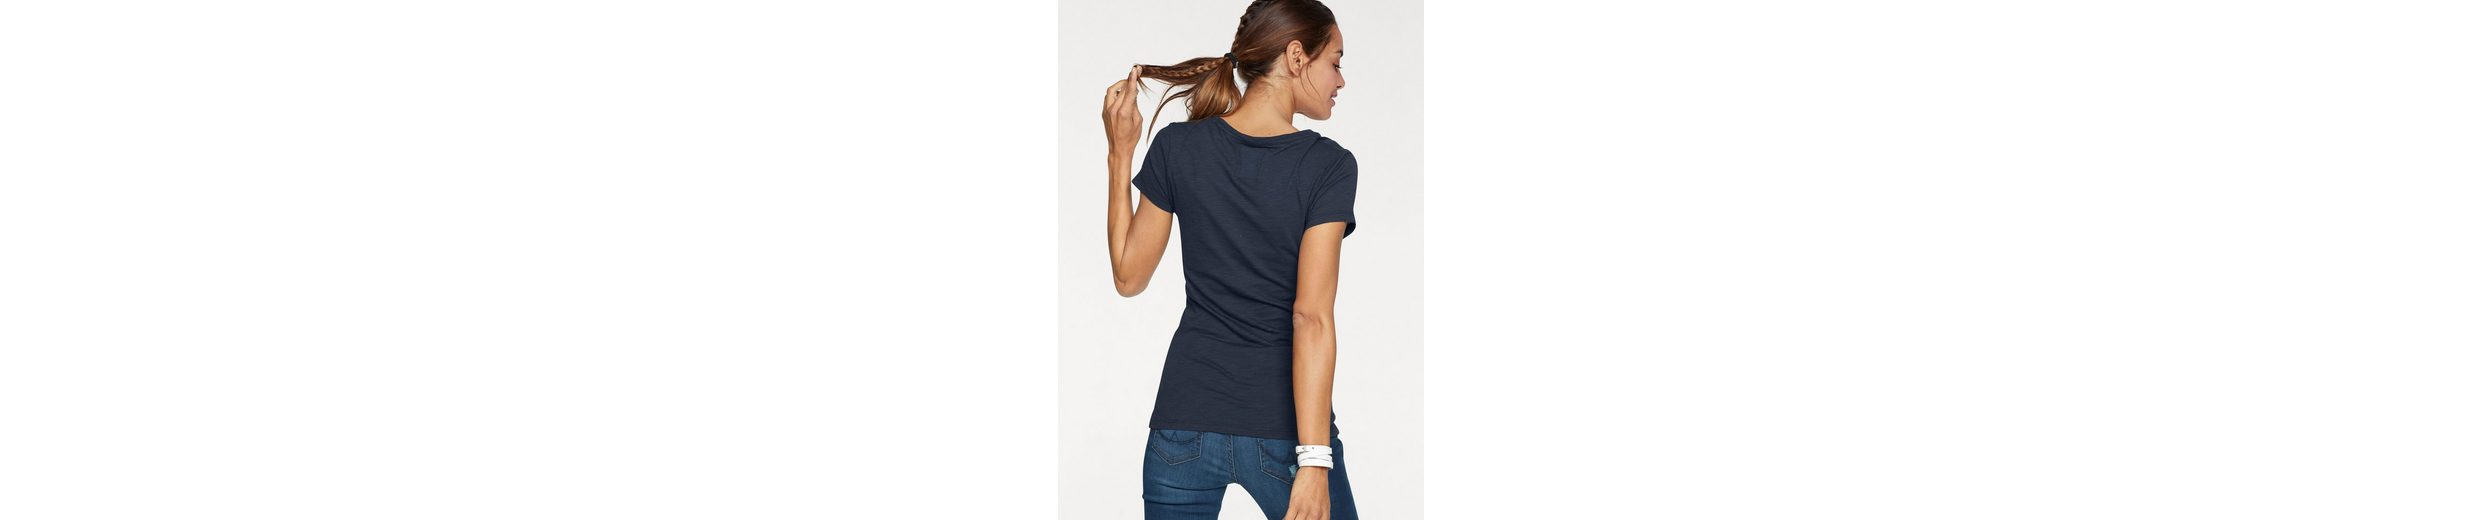 Superdry T-Shirt SUPER NO 6 PHOTO LONG LINE TEE, mit glitzerndem Frontprint